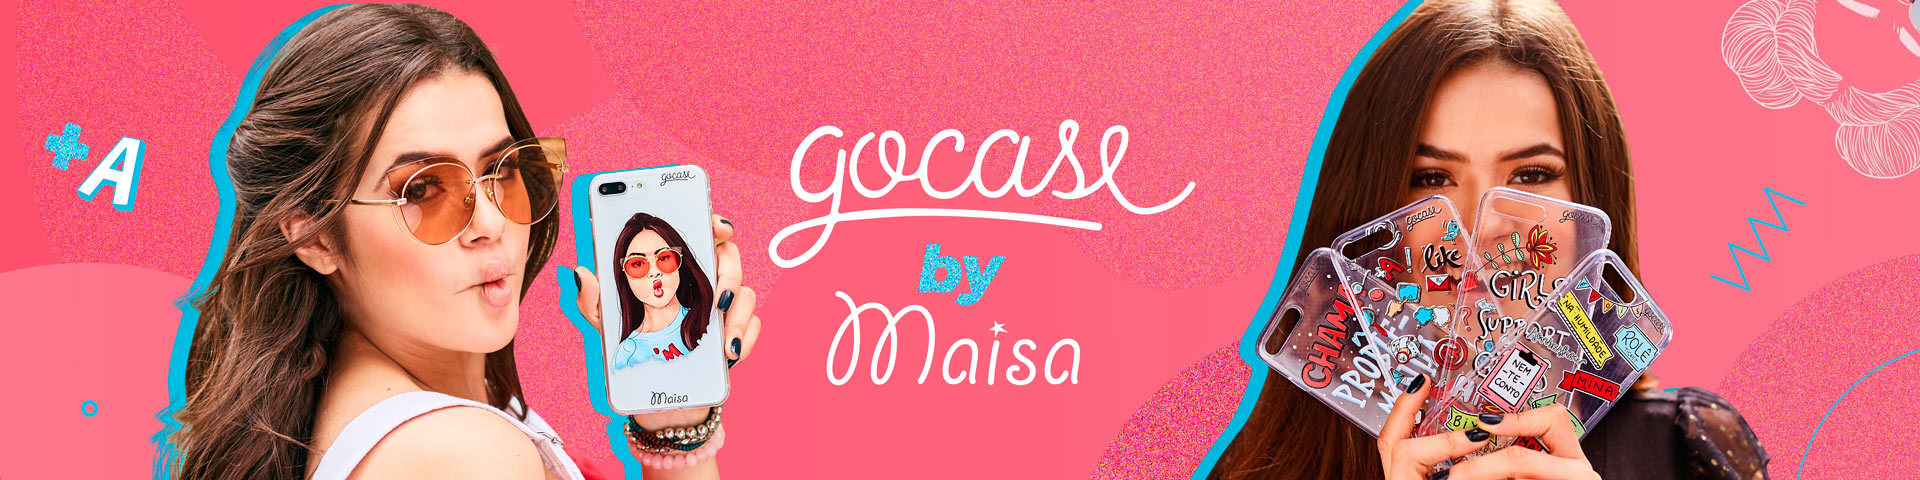 Banner colecao maisa